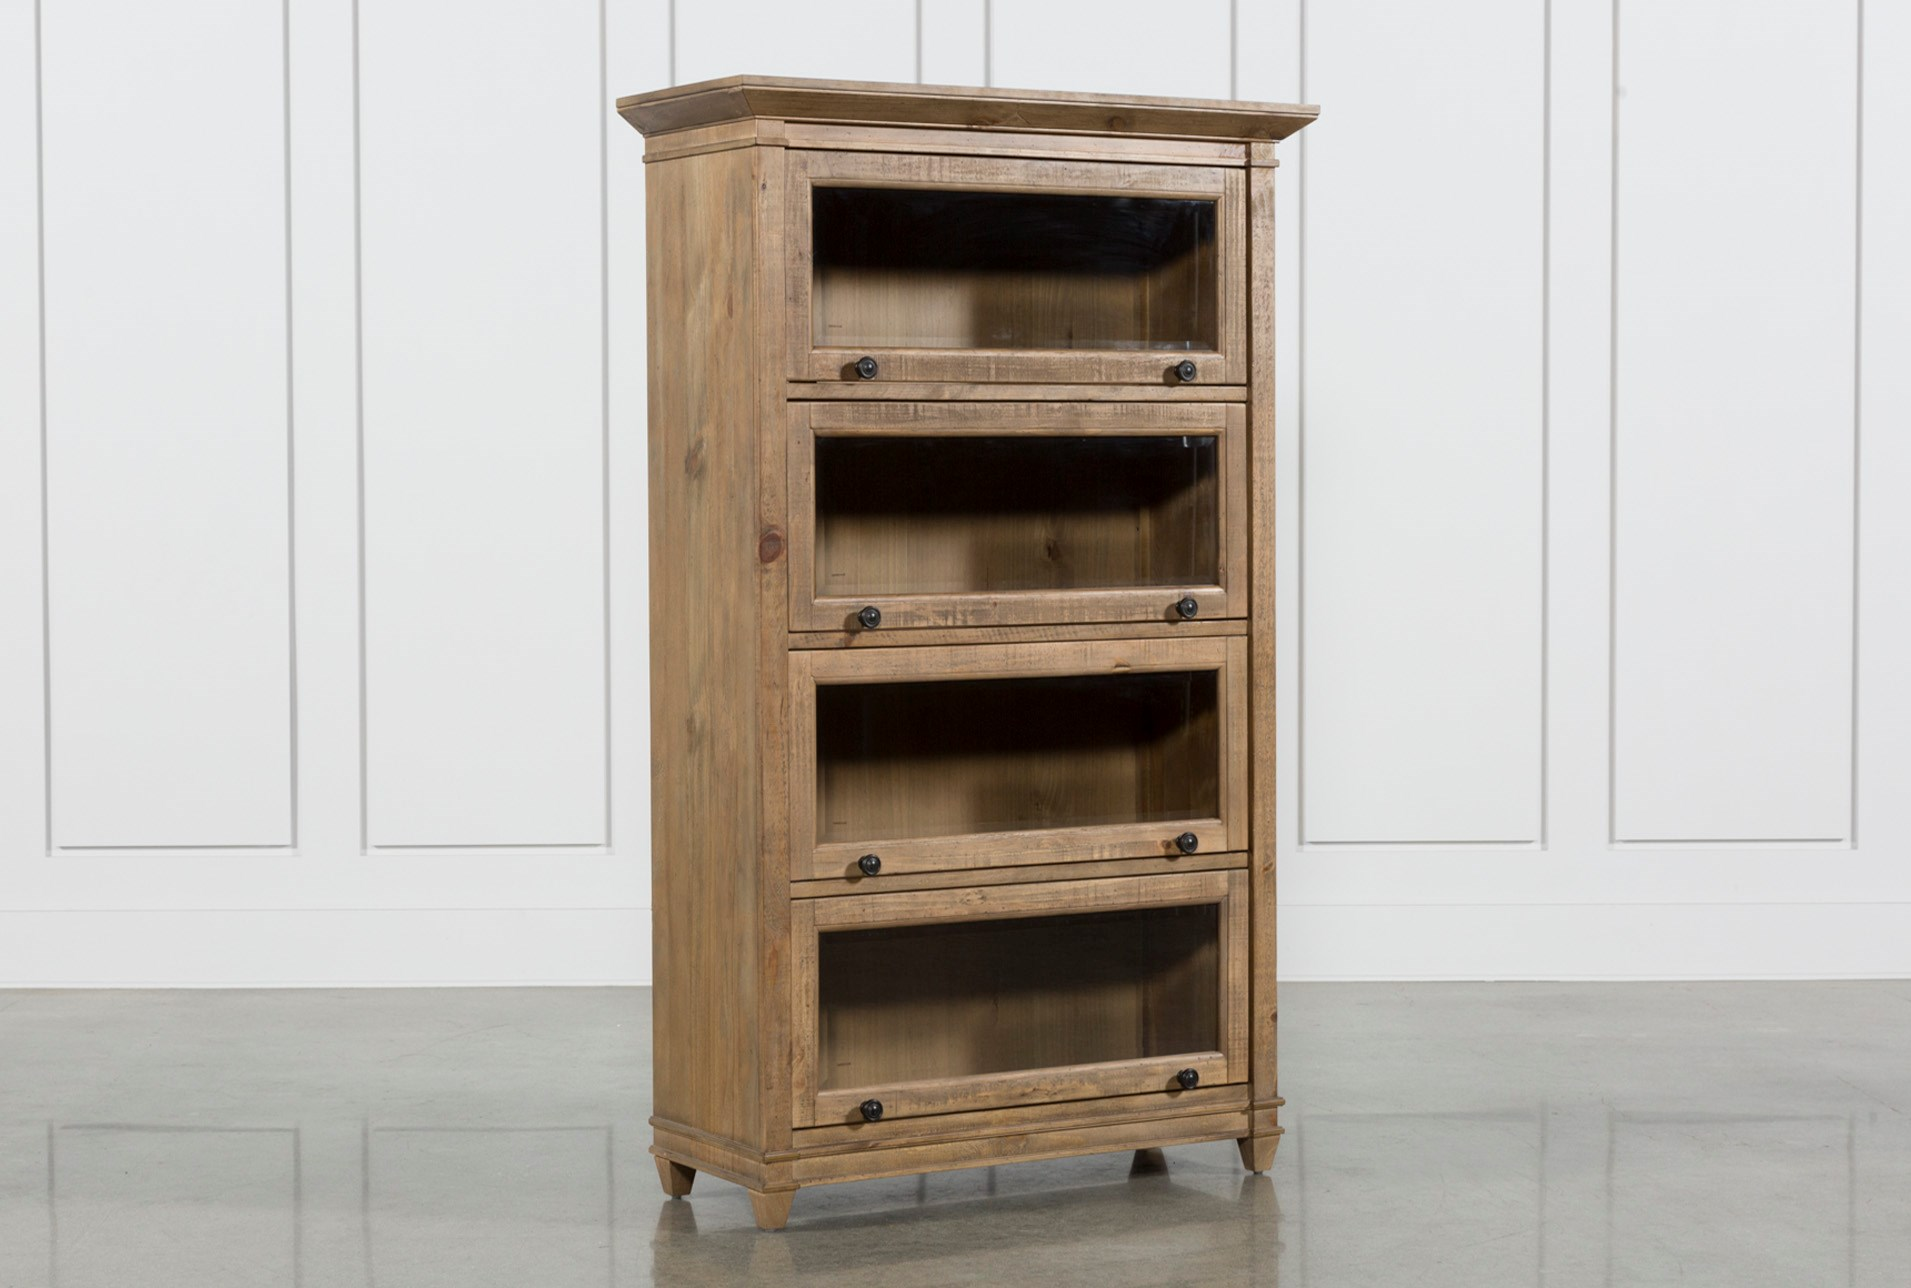 Market Barrister Curio Bookcase Qty 1 Has Been Successfully Added To Your Cart